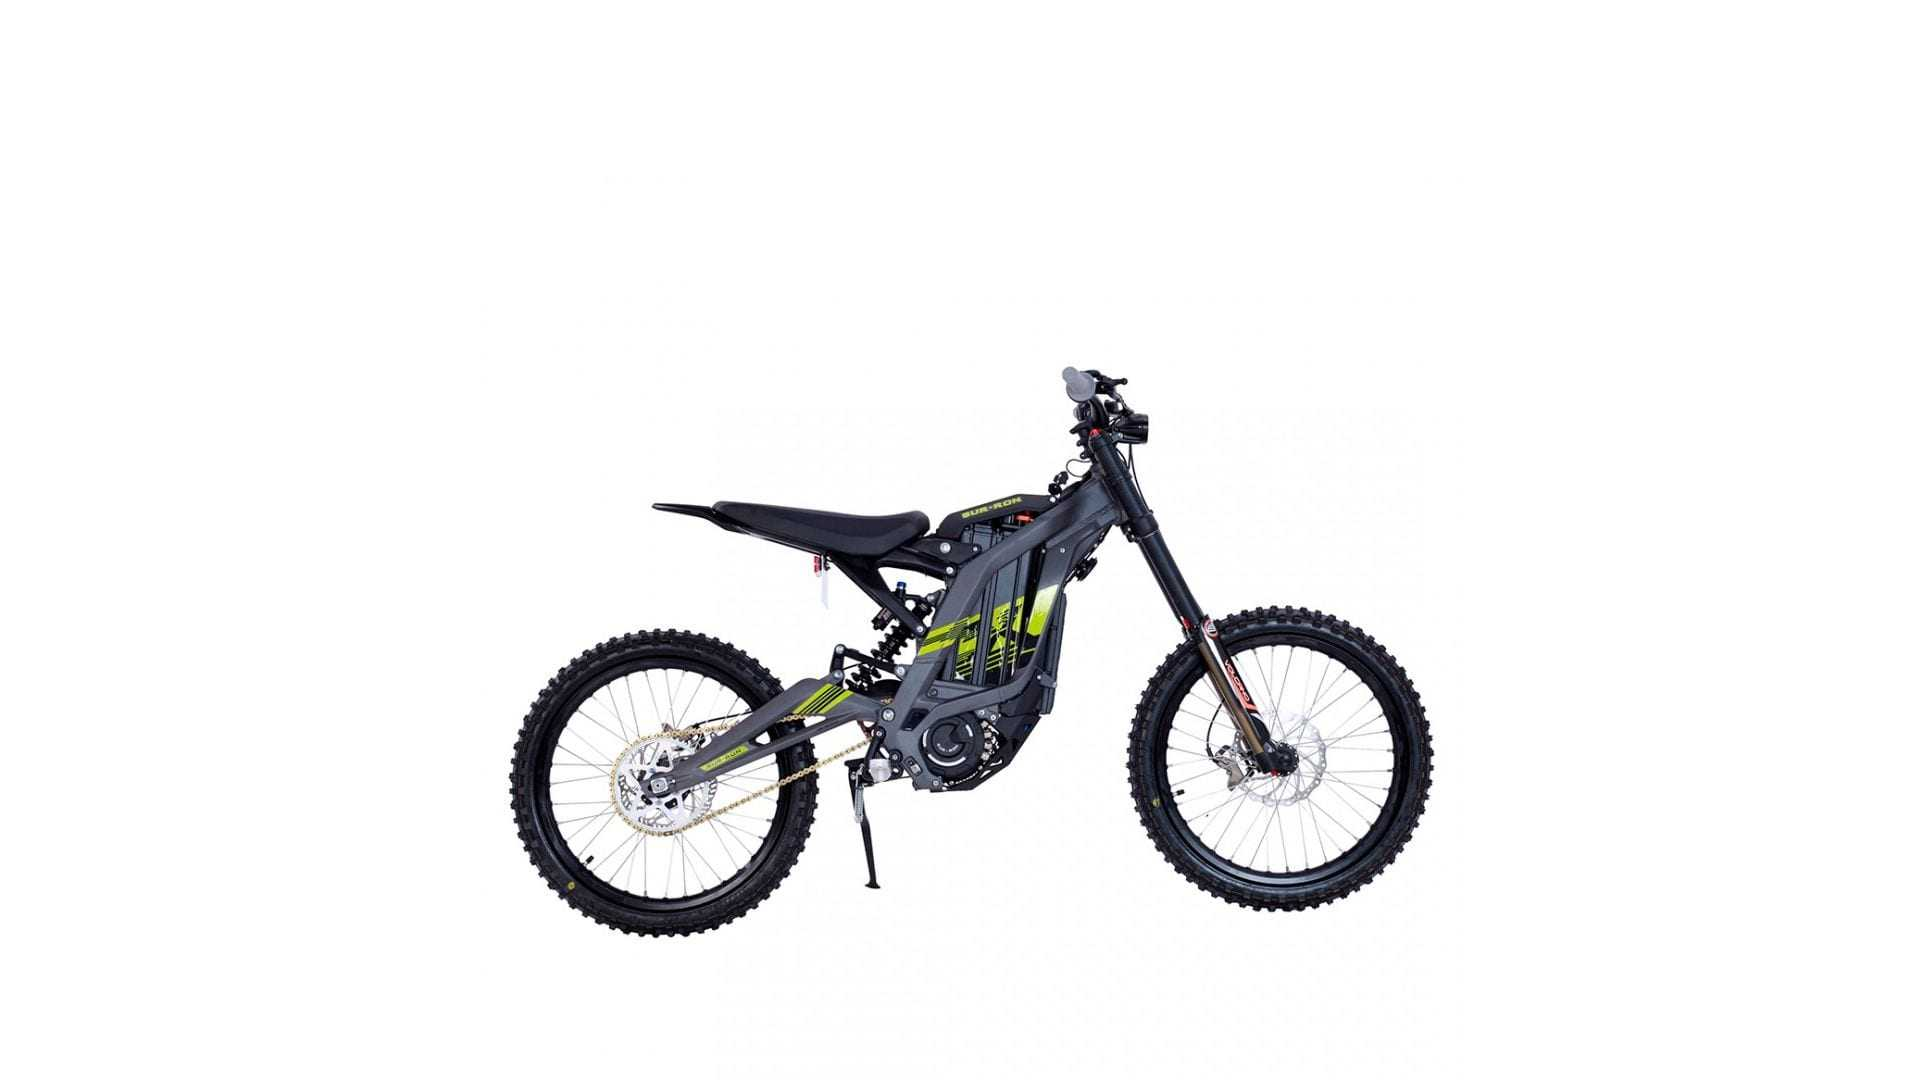 Rent An Electric Dirt Bike In Iceland